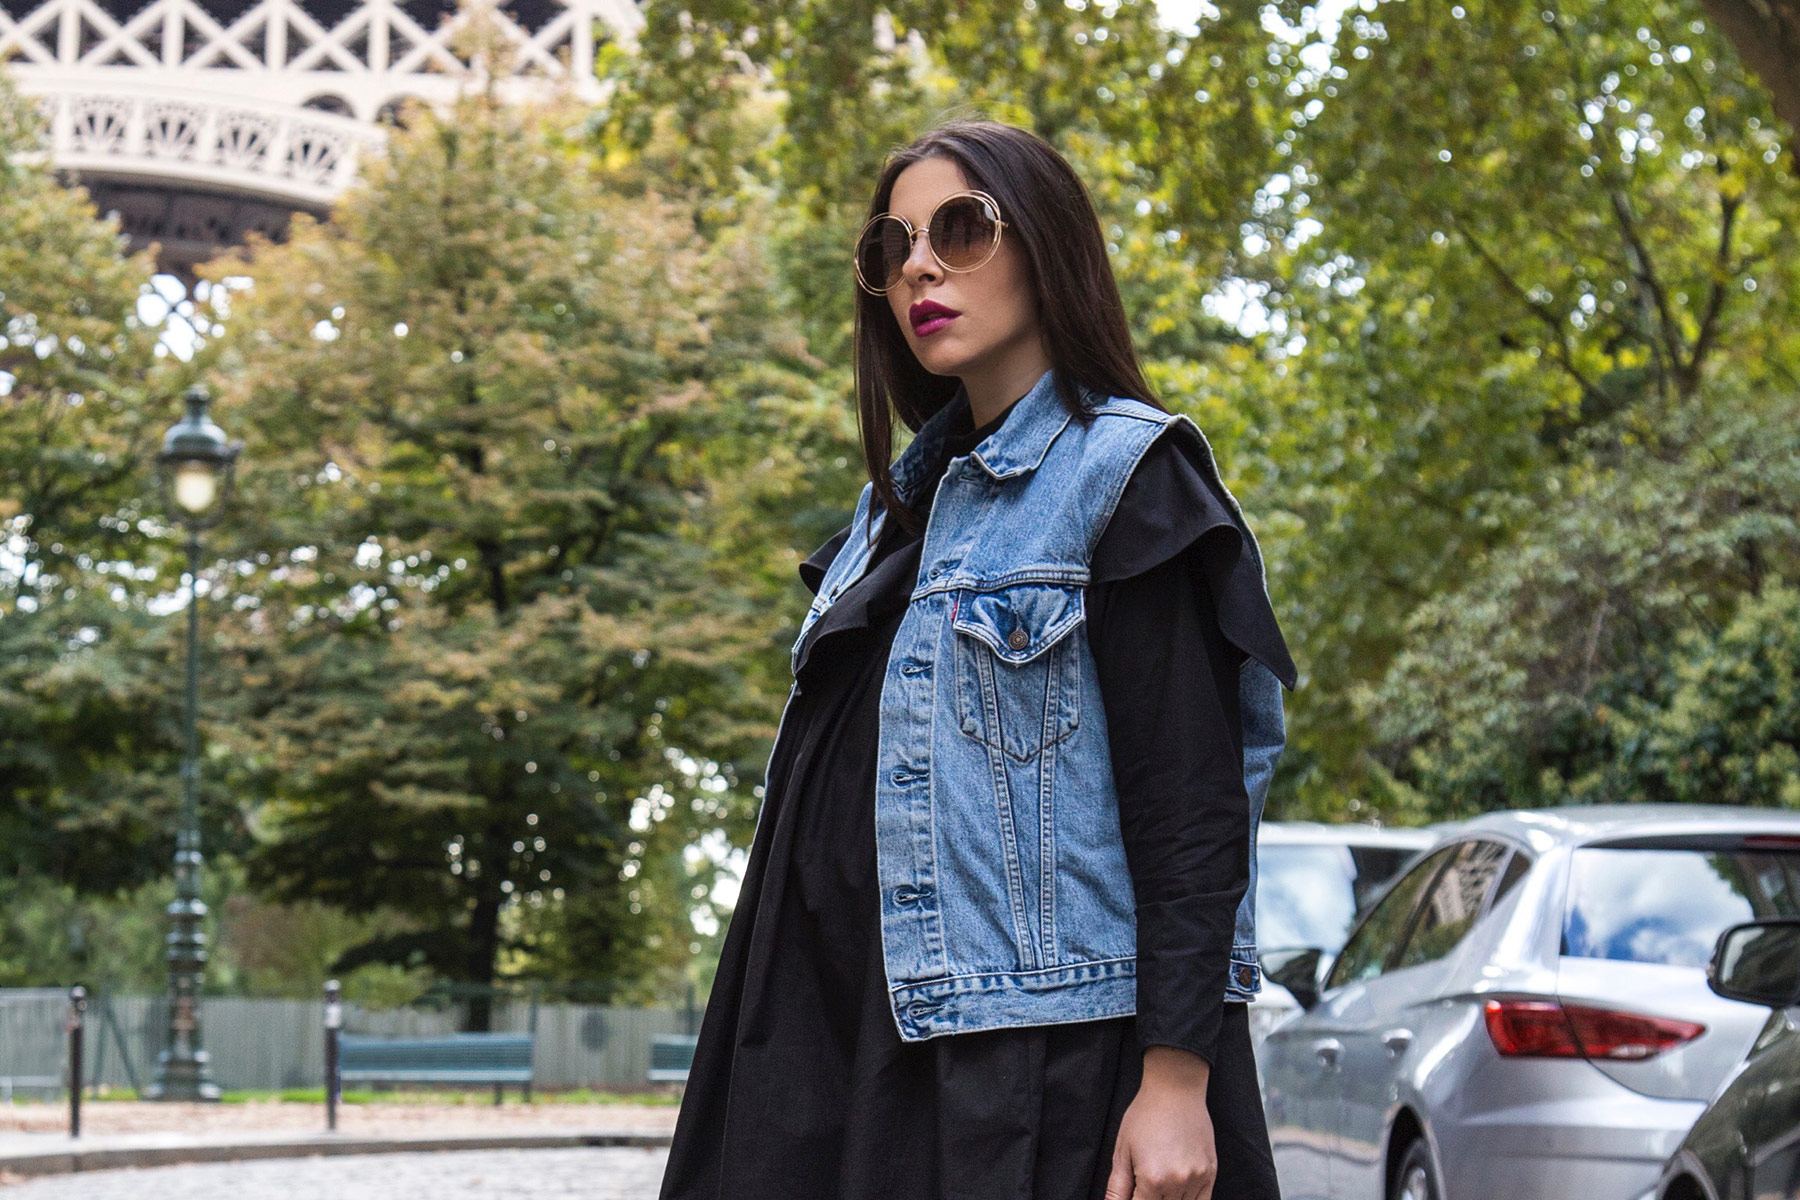 off-duty total black look with a pop of color by Stella Asteria - Lifestyle and Fashion Blogger - Paris Street Style inspiration, pregnancy style and how to dress the bump